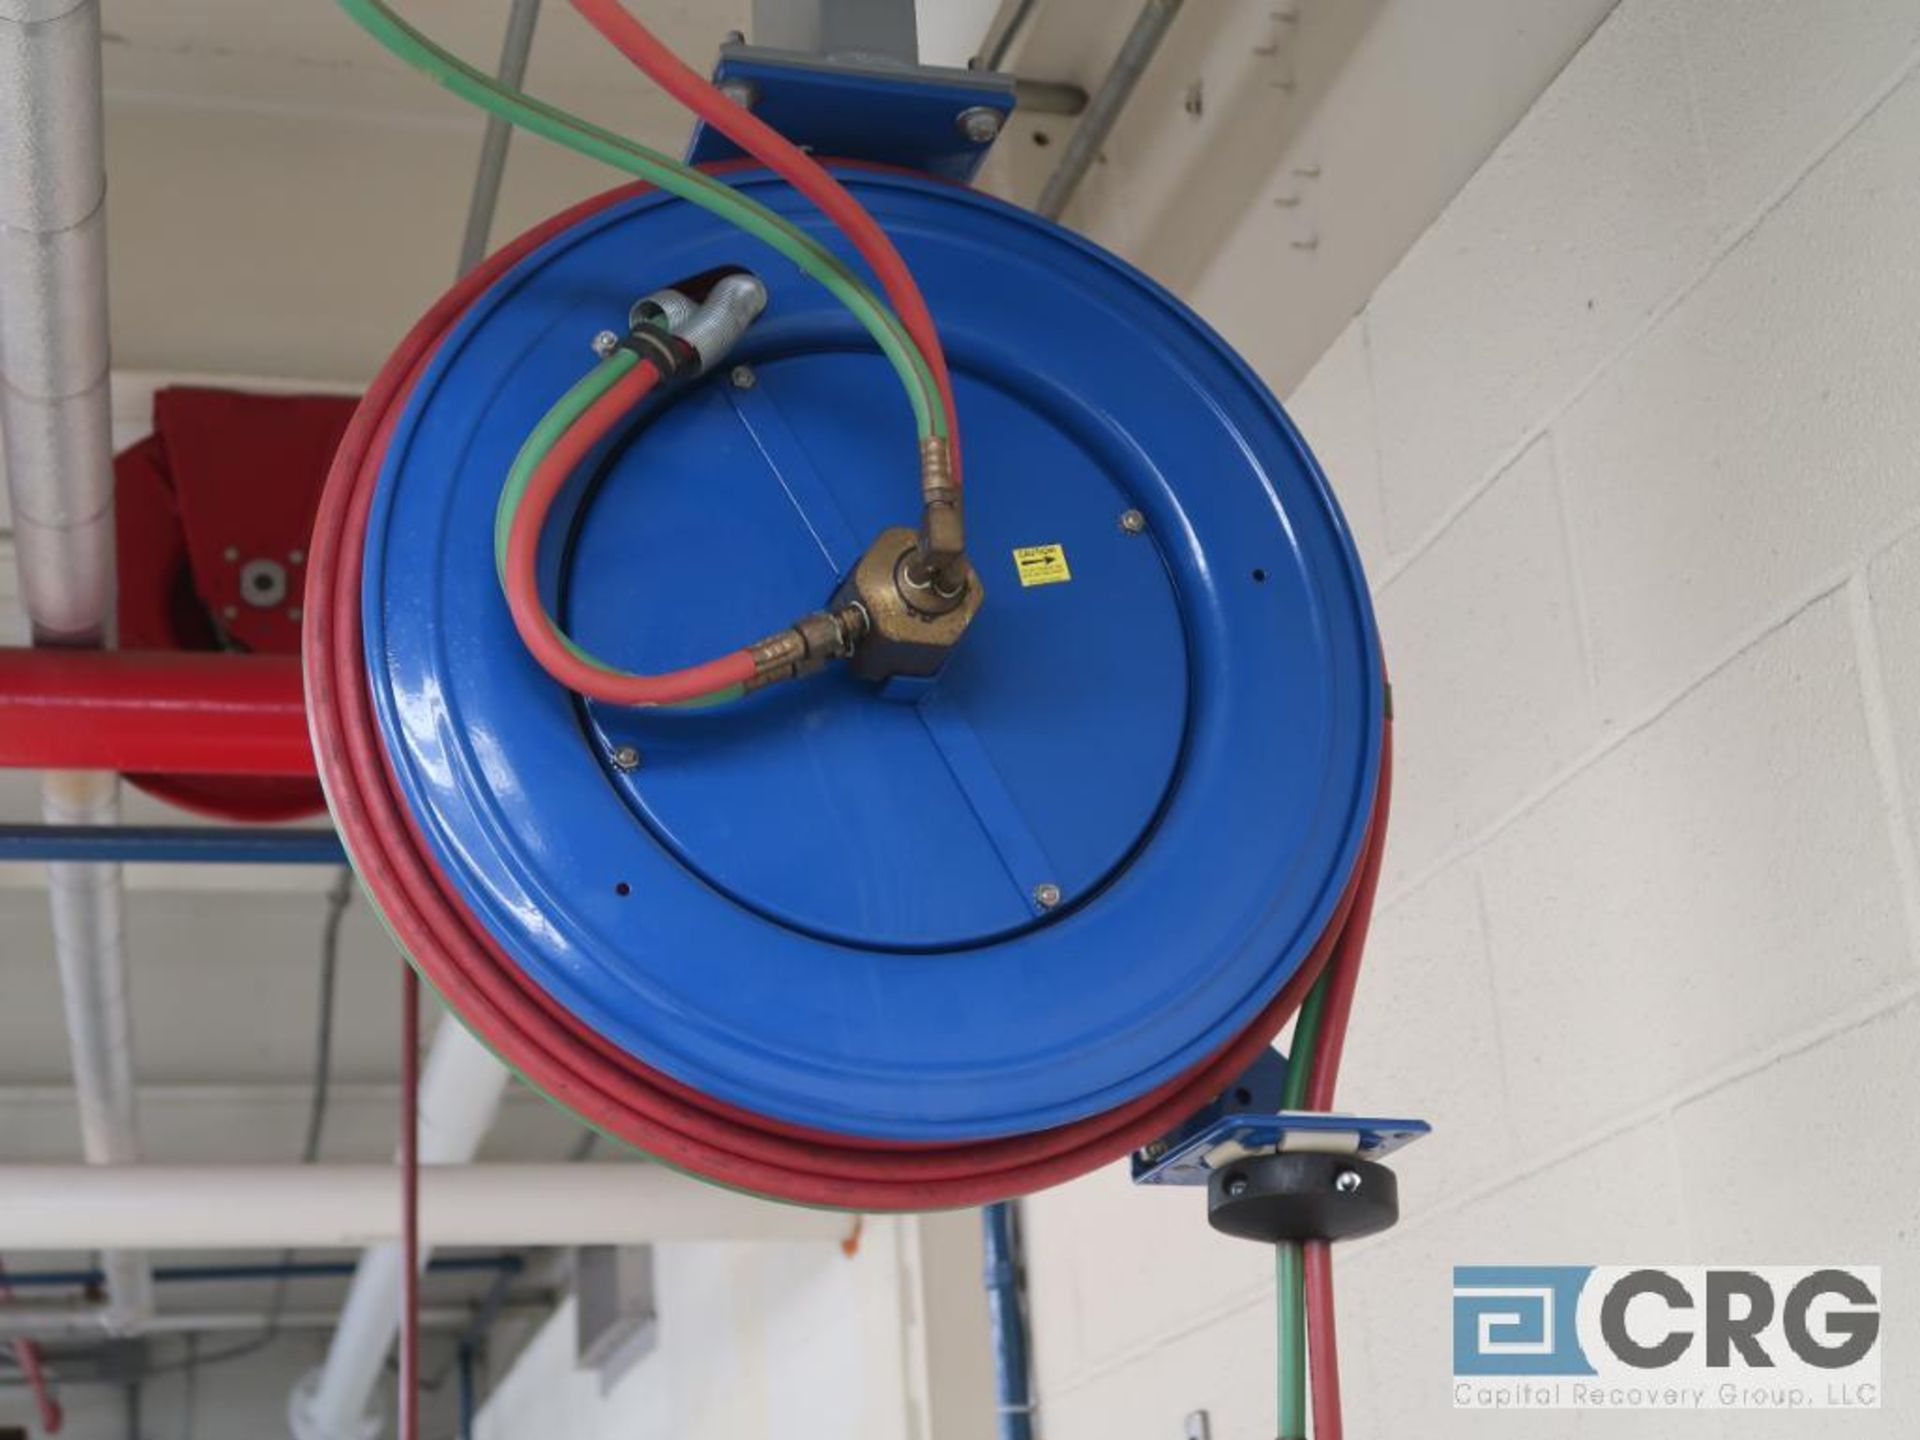 Lot of (3) hose reels including (1) air and (2) oxy/acetylene(Dandy Room) - Image 2 of 3